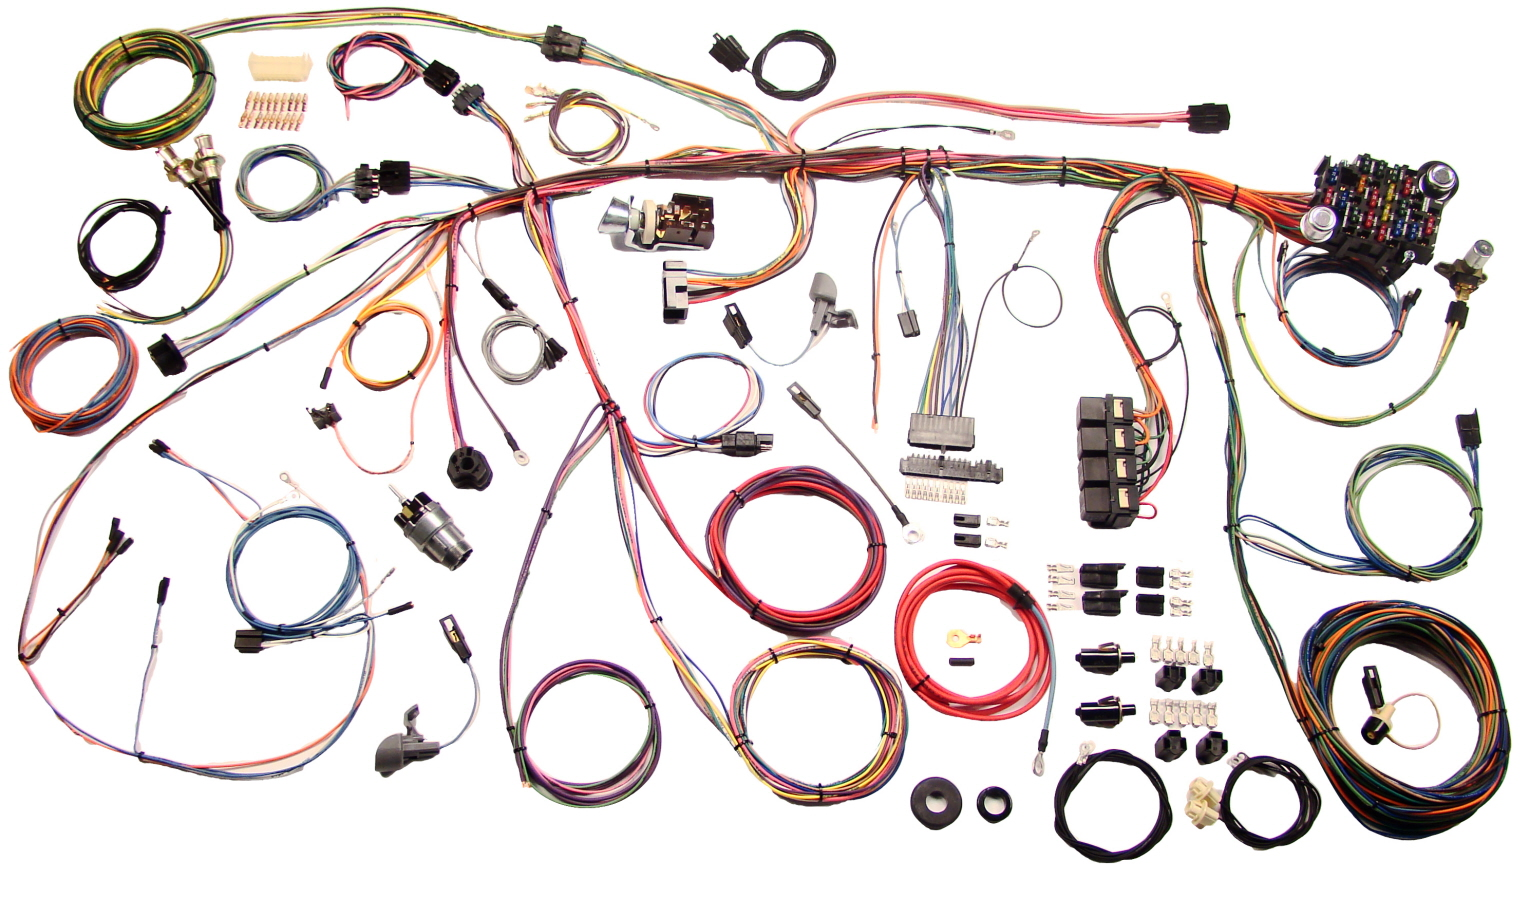 69 Mustang Classic Update Wiring Harness